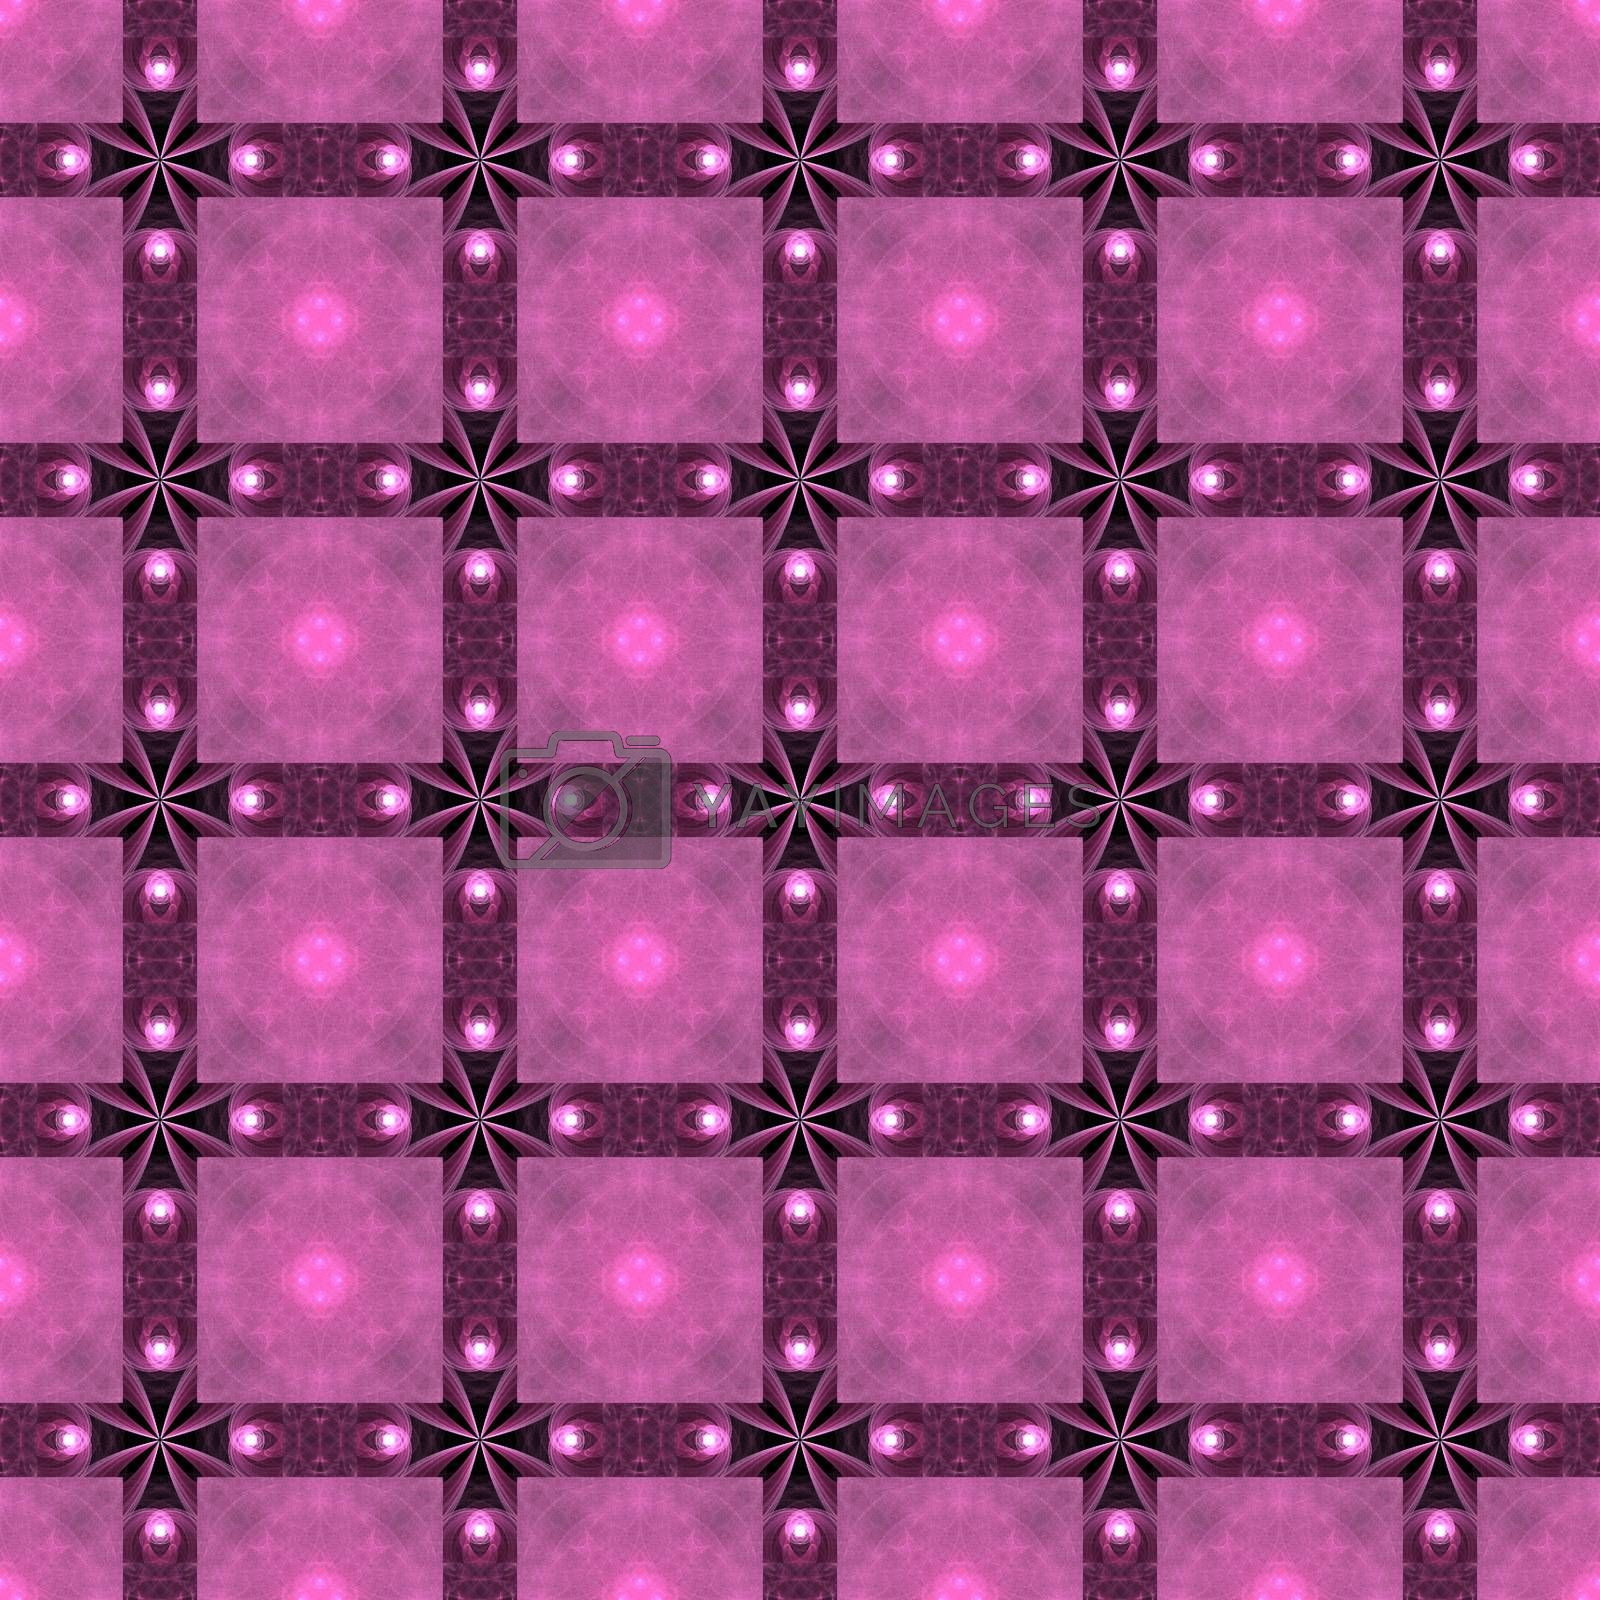 Drawing of Fractal seamless pattern in pink colors